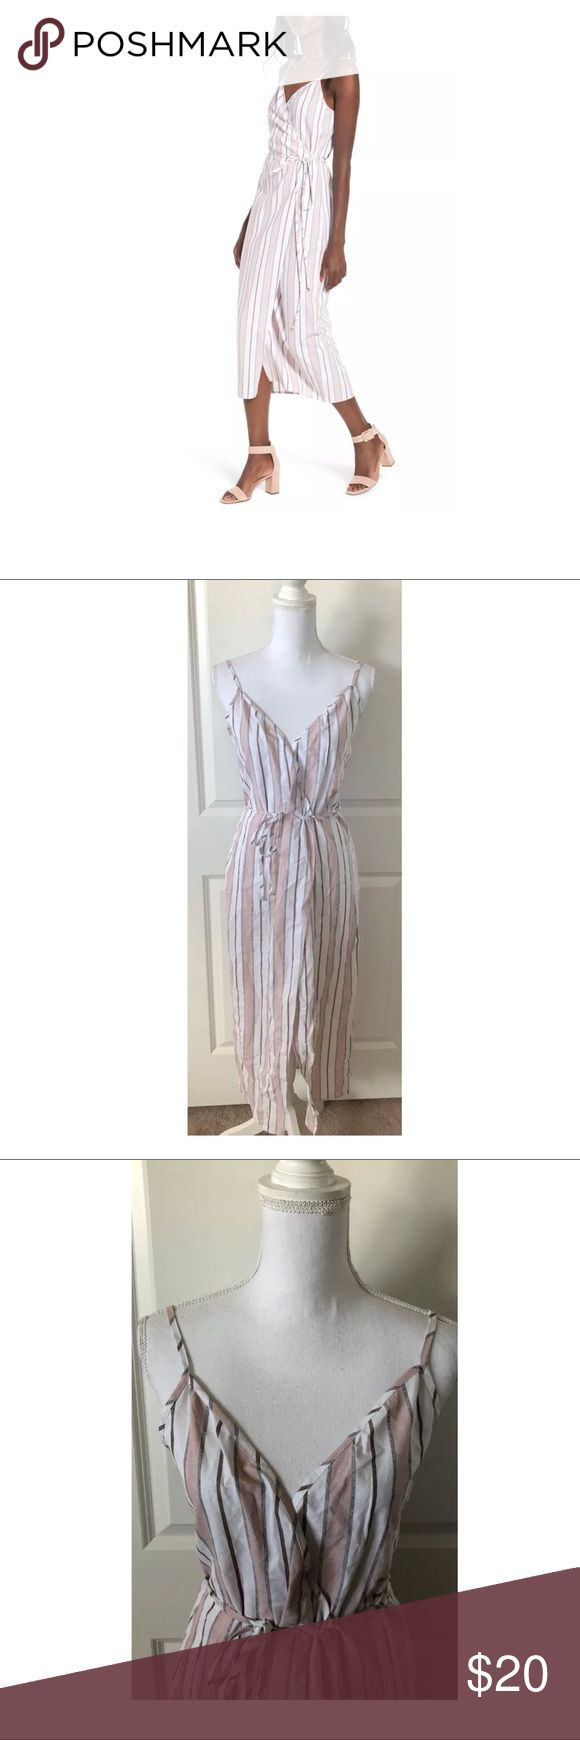 """$65 NEW WAYF for Nordstrom Wrap Midi Dress Stripe New without tags. Retails for $65 + Tax  Beautiful, wrap style midi Adjustable straps Full wrap style Pink white stripes  Size S  Measures approximately: total length 47""""  High end department store shelf pull- new without tags. May have had customer contact *Has a small open seam on the side- very minor. Easy repair if desired. Shown in photos. Otherwise excellent.   PLEASE ASK ANY QUESTIONS BEFORE PURCHASE, THANKS CHECK OUT MY OTHER DESIGNER…"""